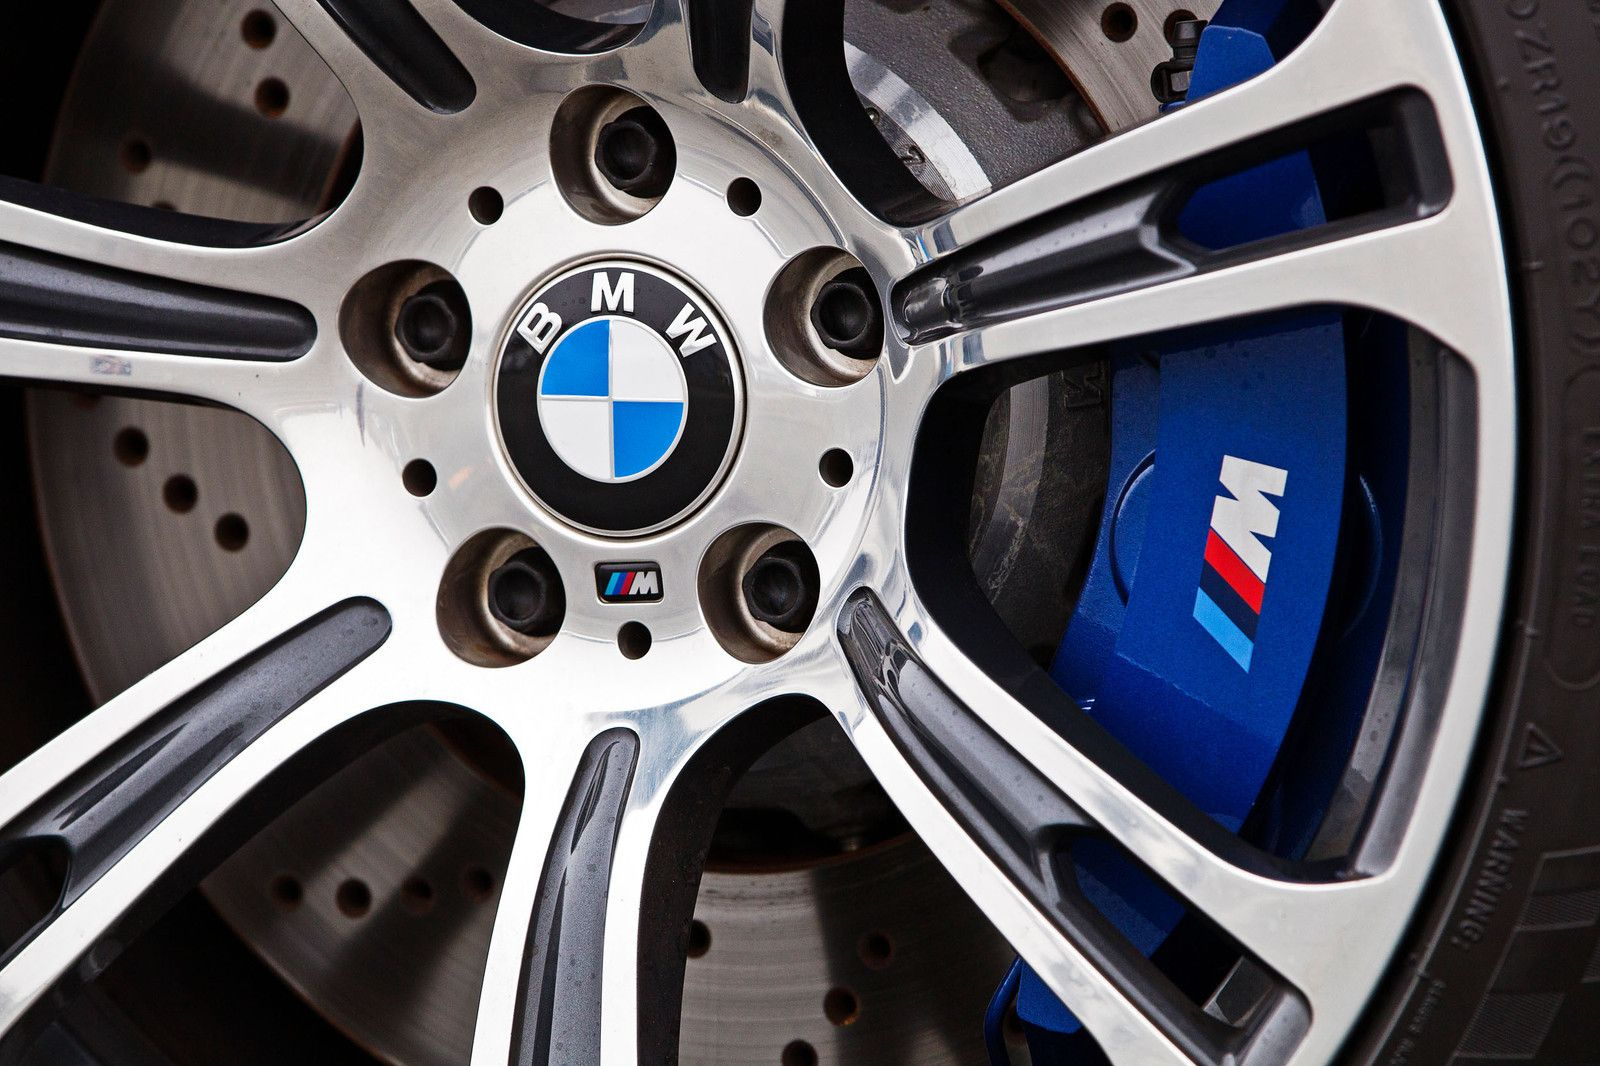 BMW M Brake Caliper Decal Blue Calipers BMW Pinterest BMW - Bmw brake caliper decals